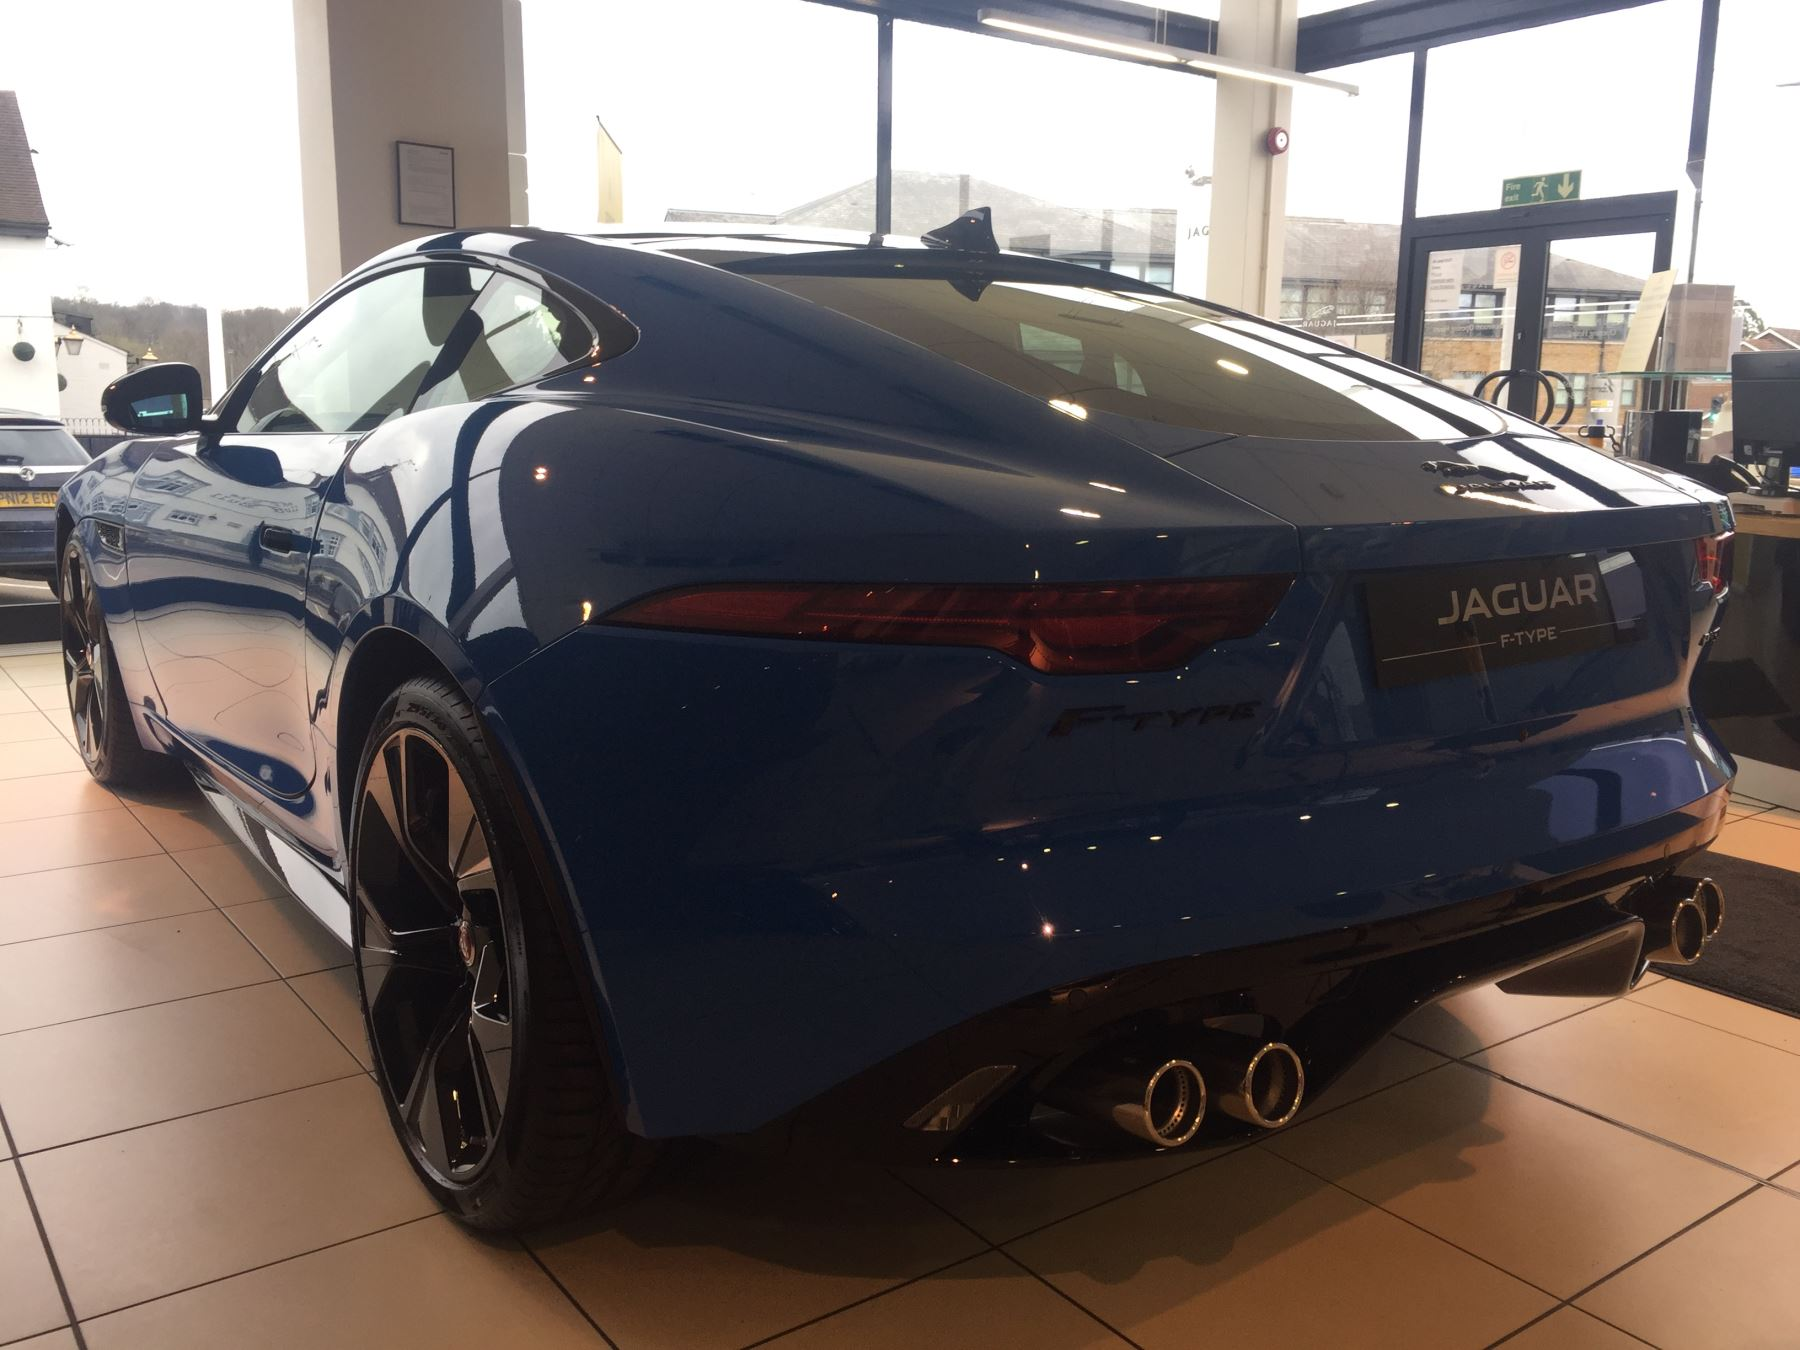 Jaguar F-TYPE 5.0 P450 Supercharged V8 R-Dynamic LIMITED REIMS EDITION image 11